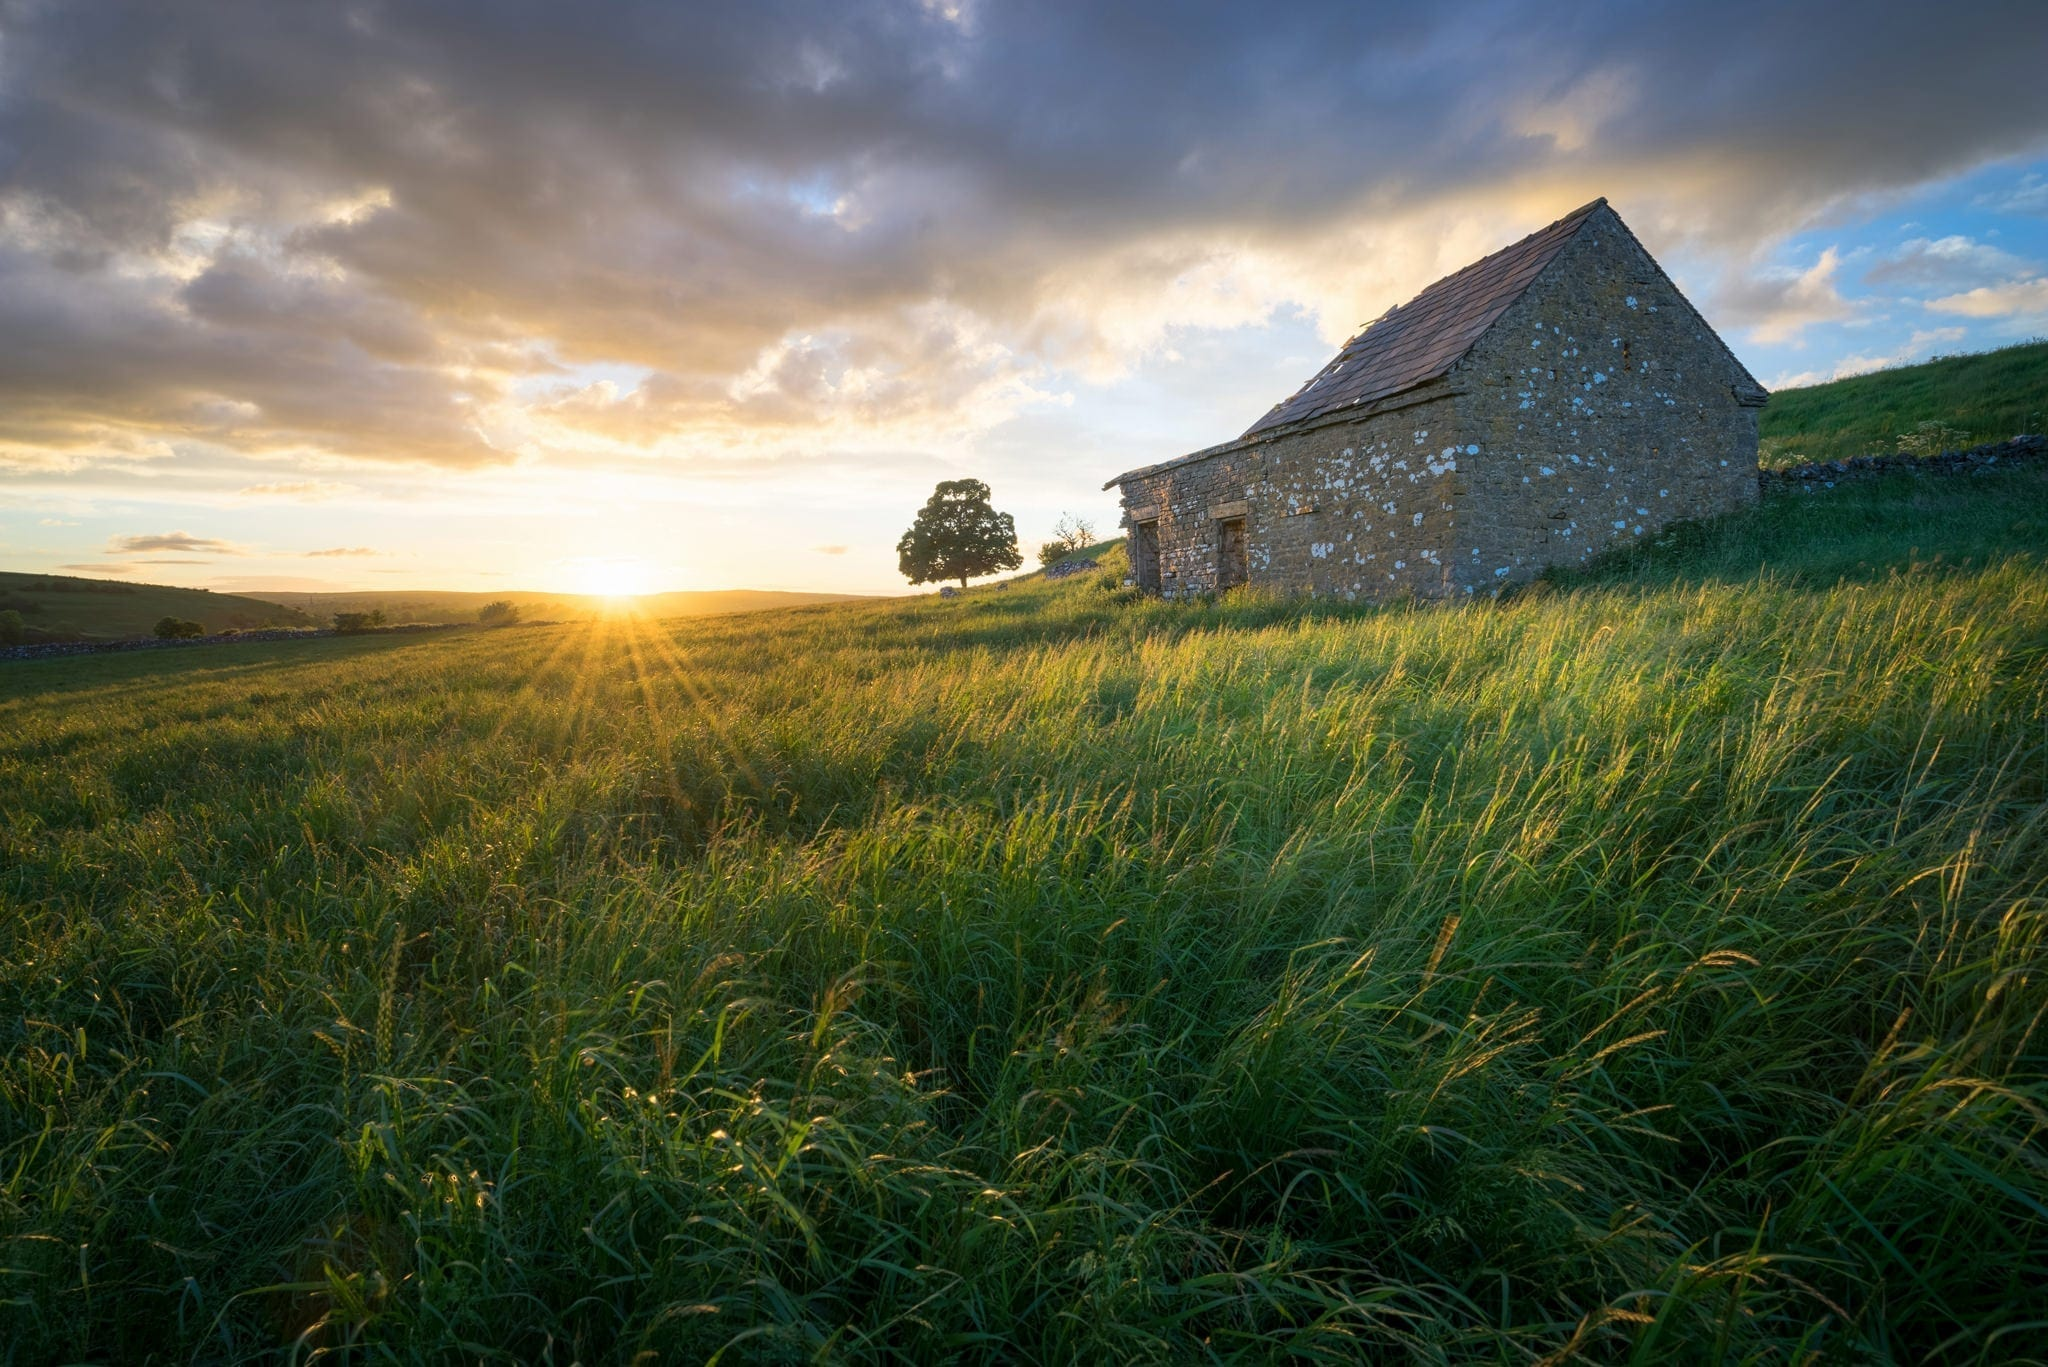 Wetton Barn Sunset - Summer Solstice Peak District Photography Workshop